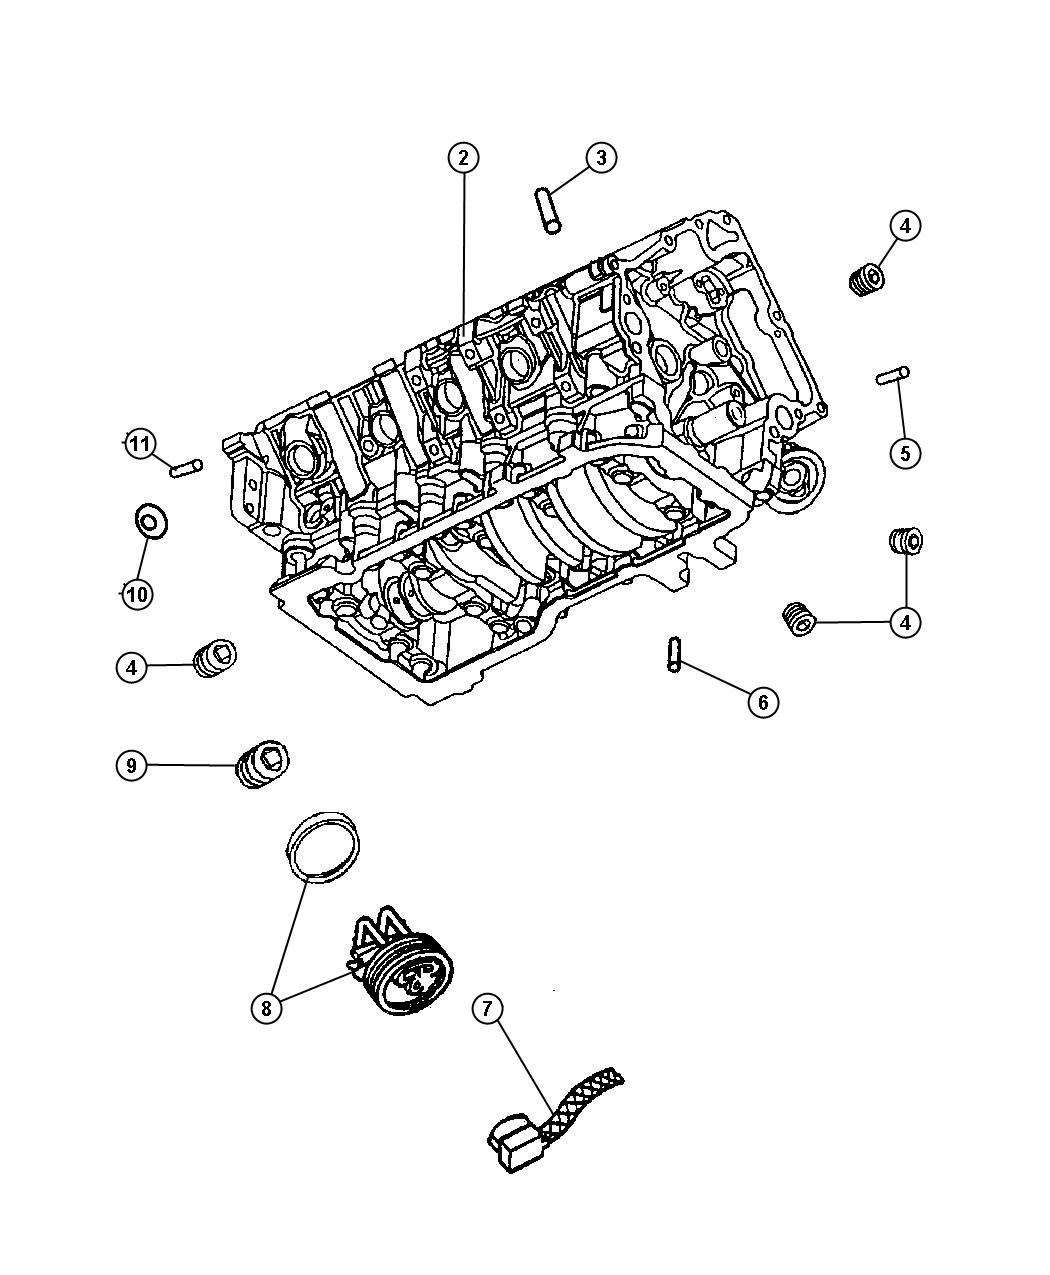 Jeep Grand Cherokee Engine Block Heater For 3 7l V6 And 4